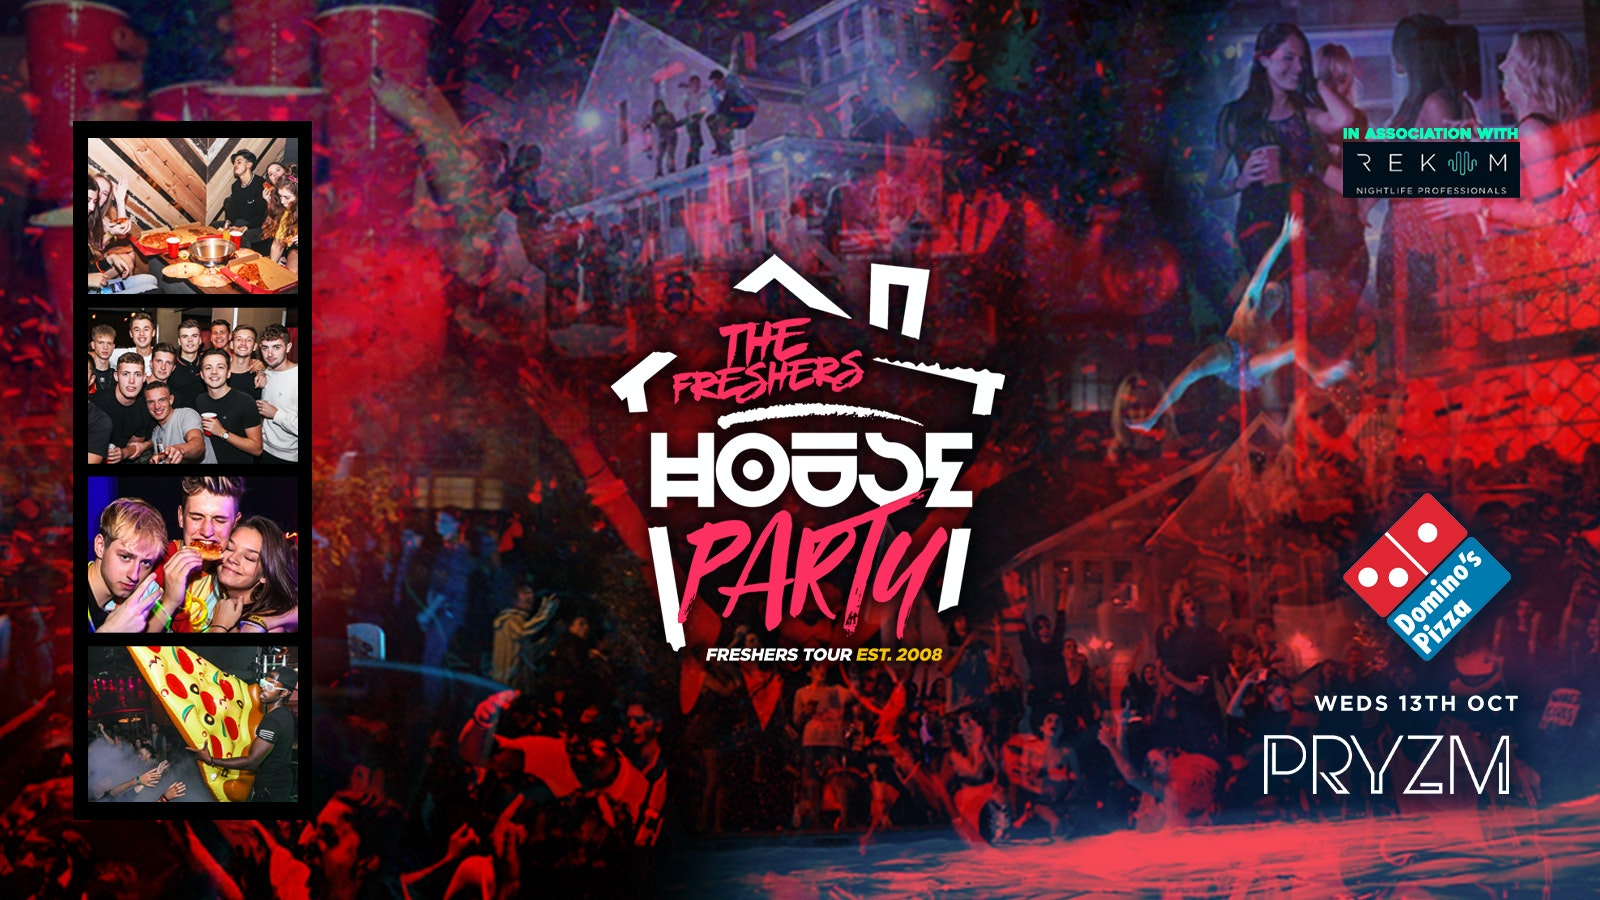 Neon Freshers House Party   Portsmouth Freshers 2021